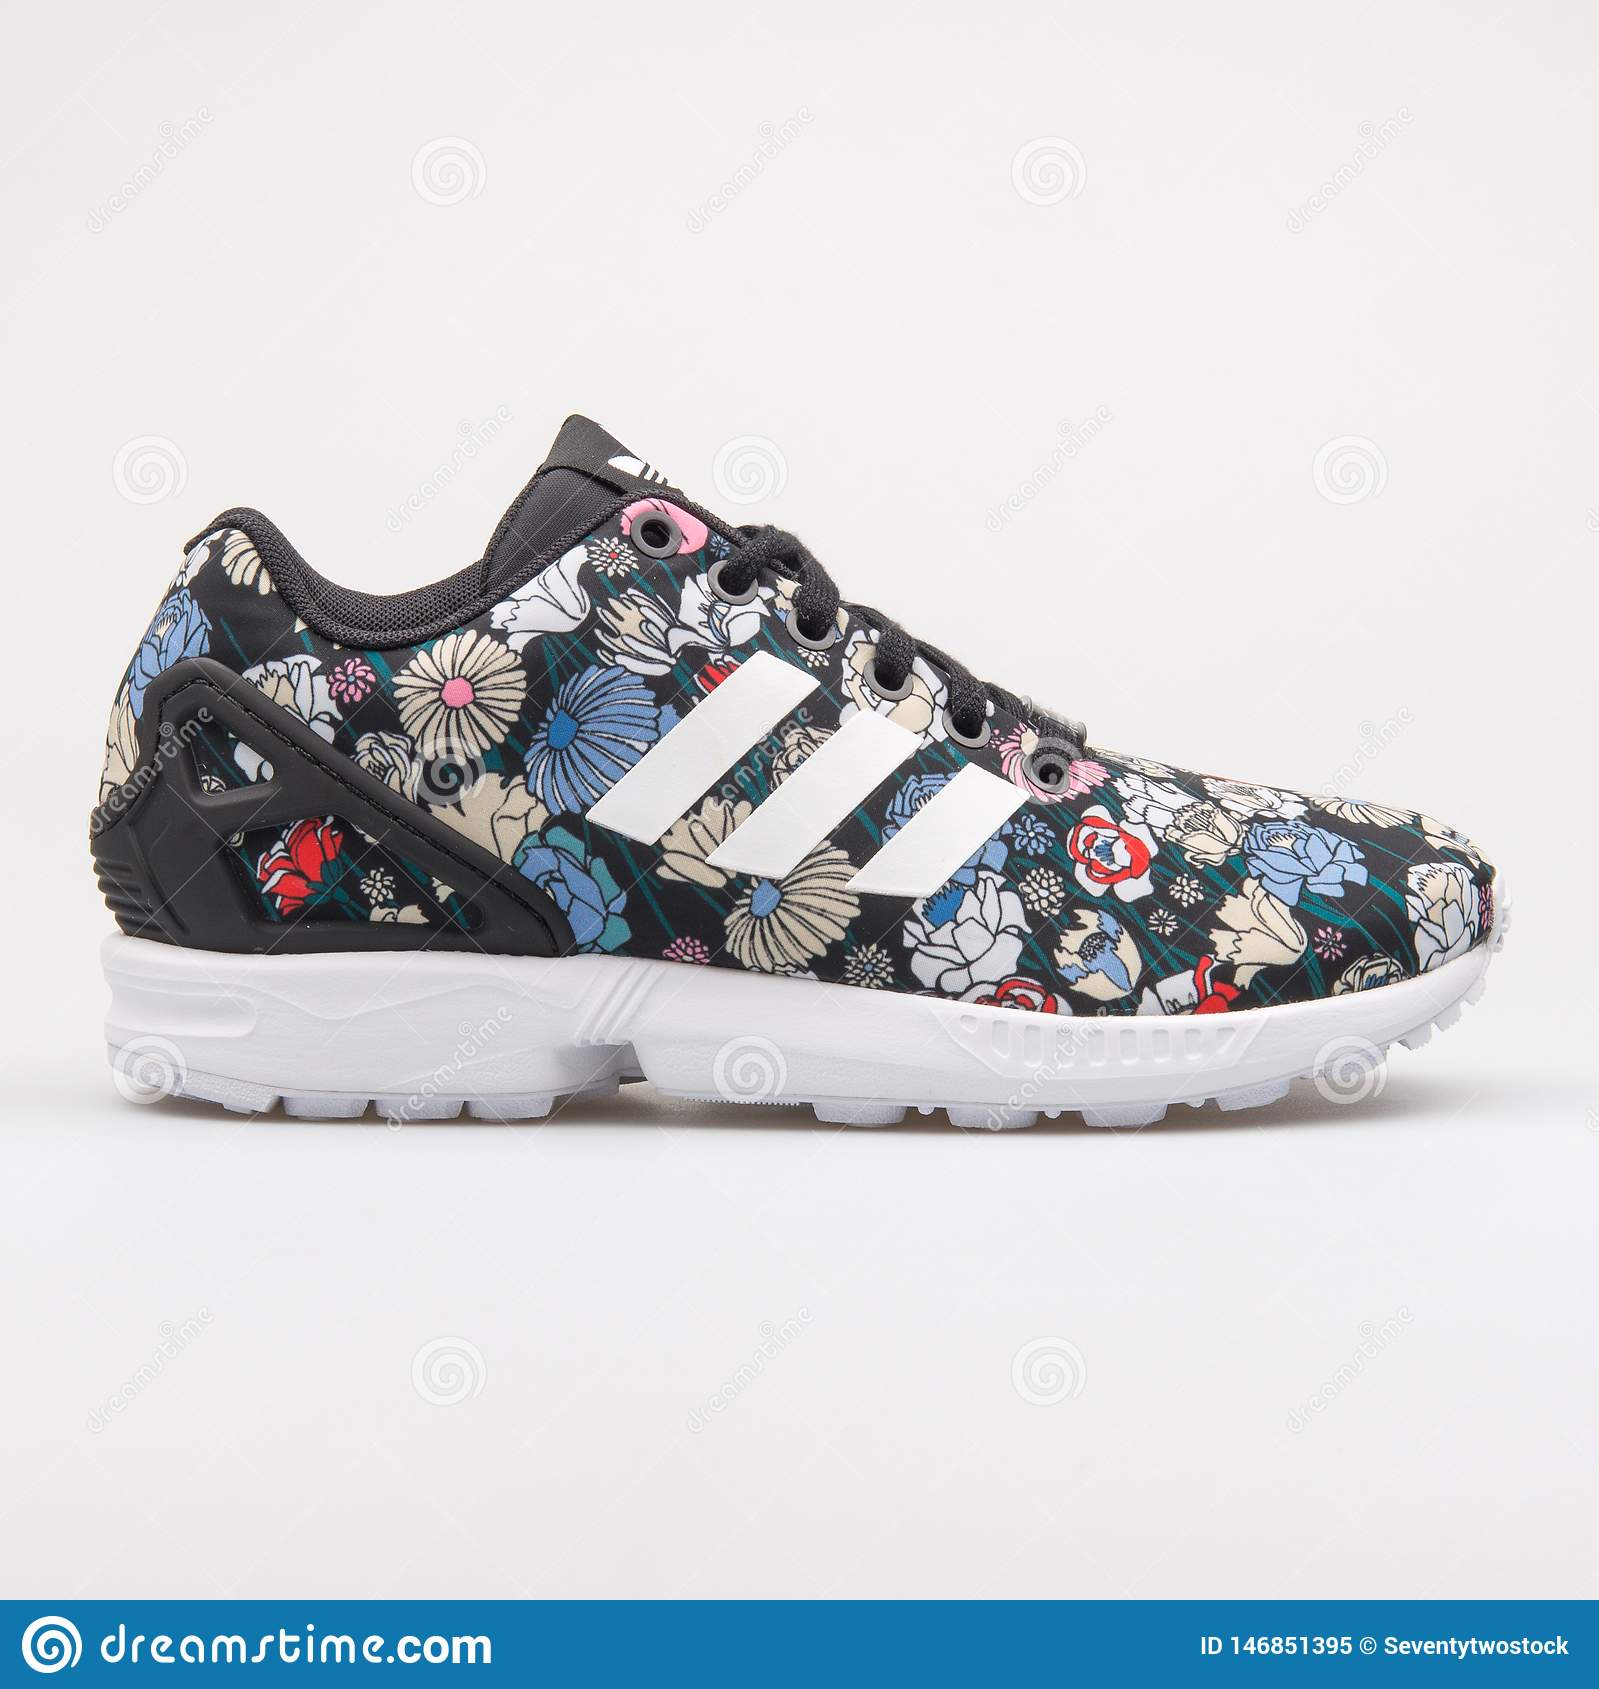 Adidas ZX Flux Black And Floral Print